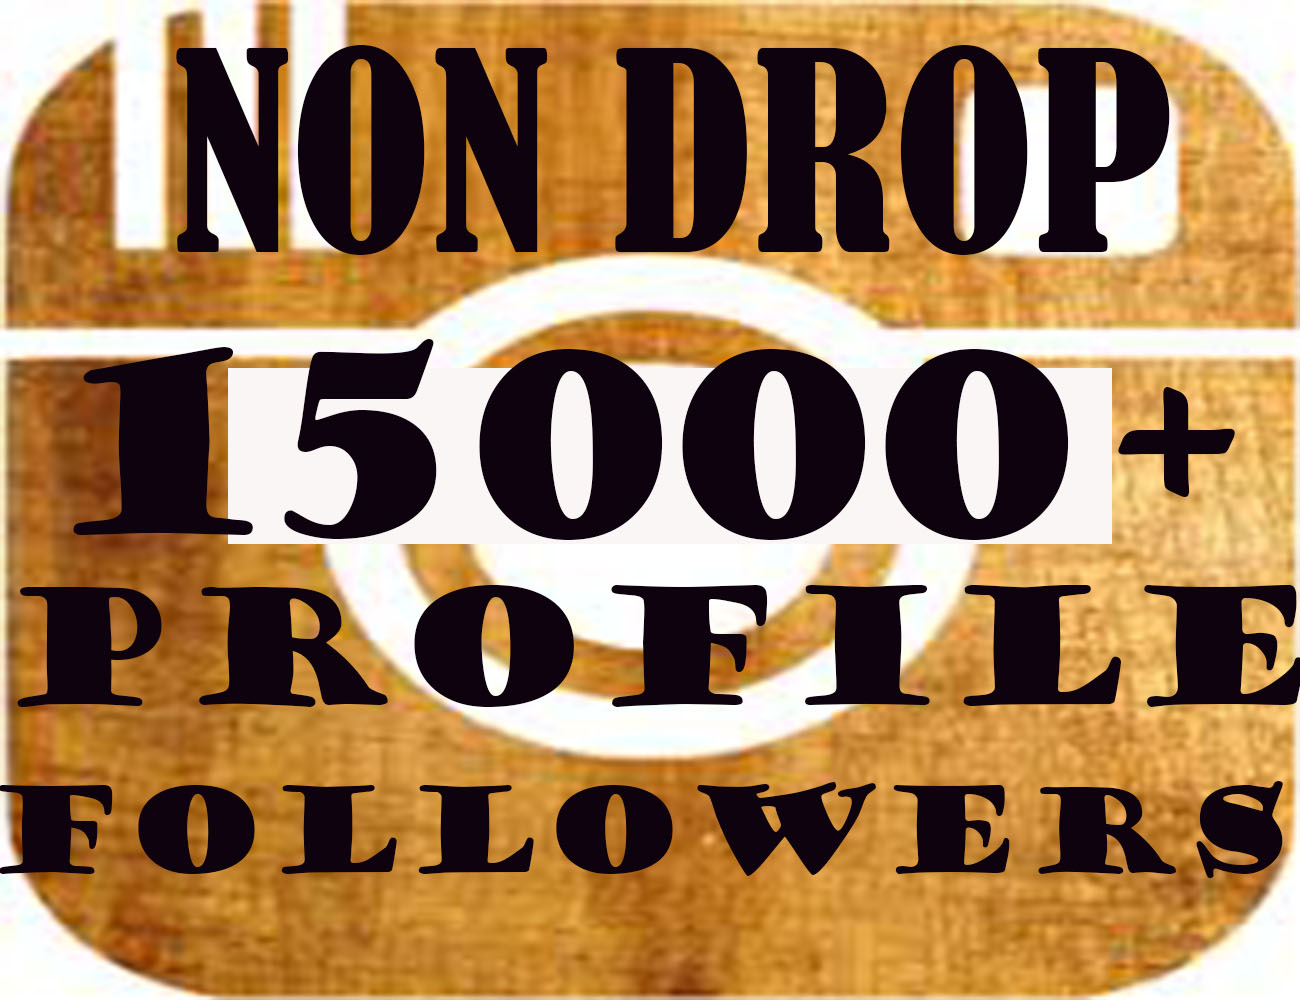 15000+Stable Profile Followers within 12 hours